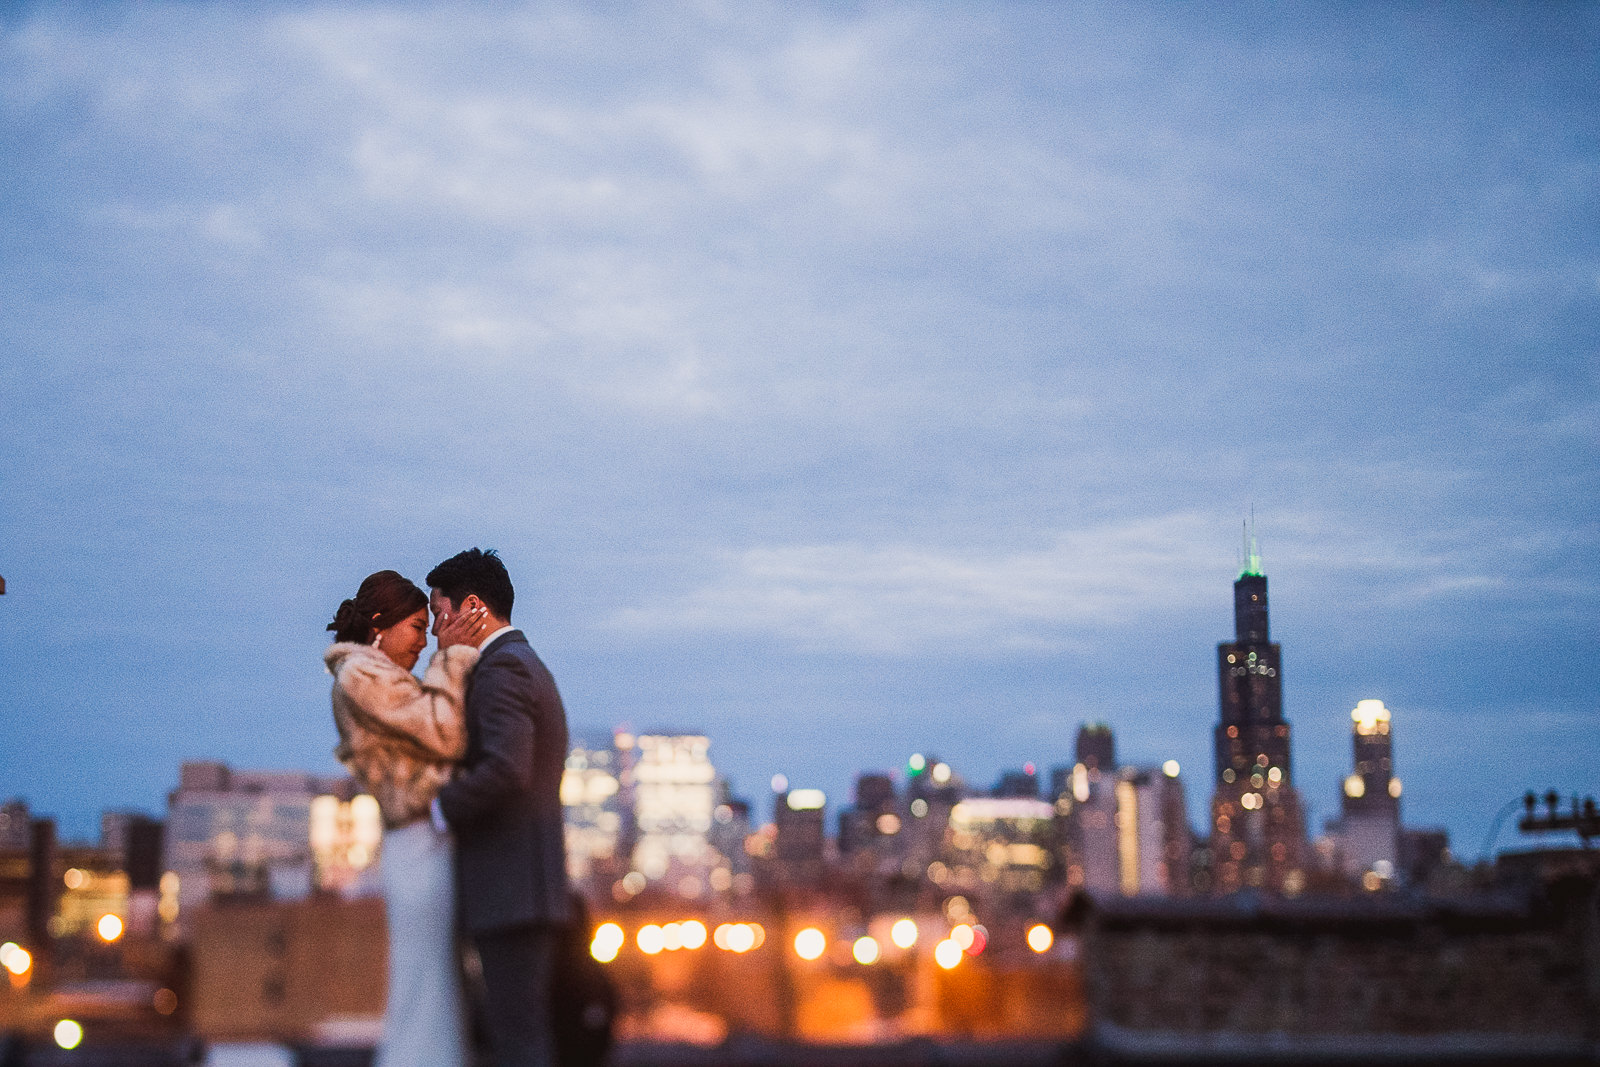 58 nightime chicago wedding photos - Rebecca + Doha // Wedding Photos at Room 1520 Chicago